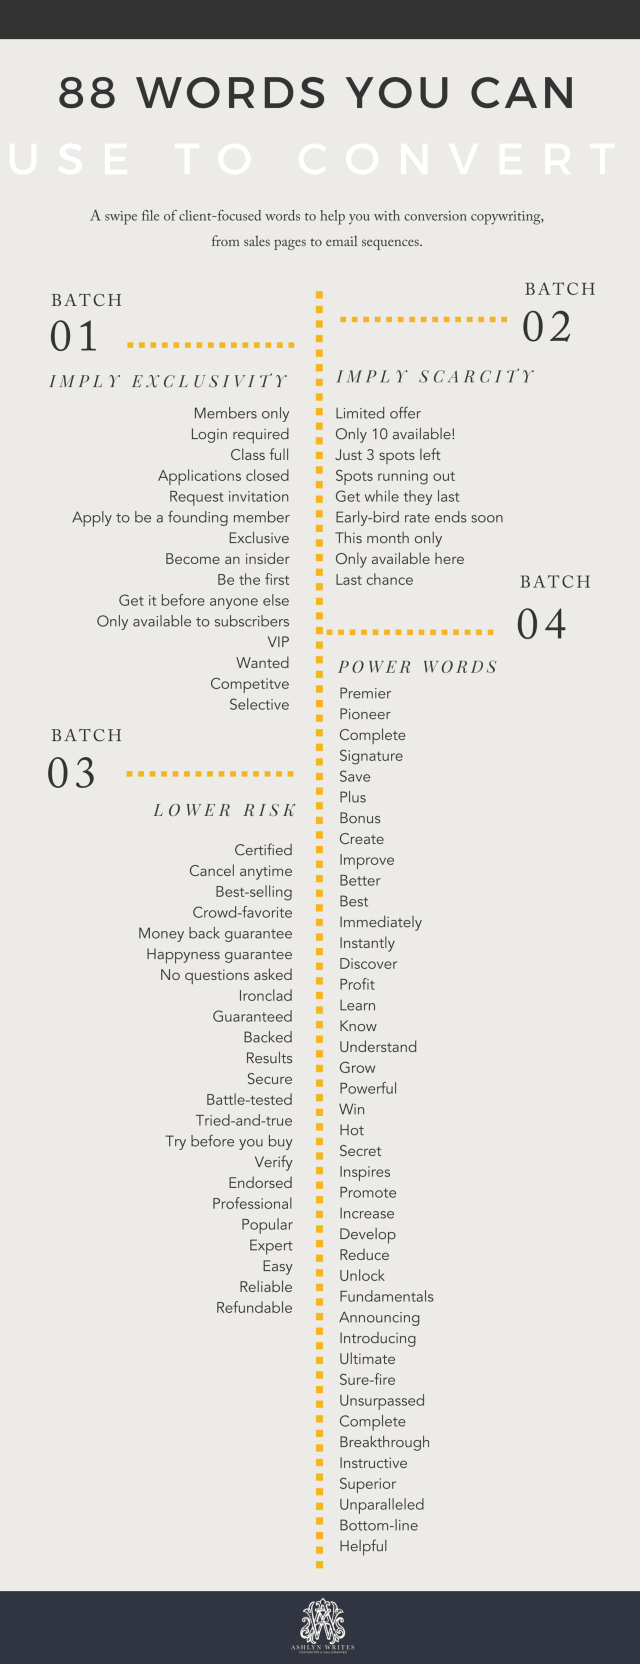 88 Words to Convert Infographic compressed.png